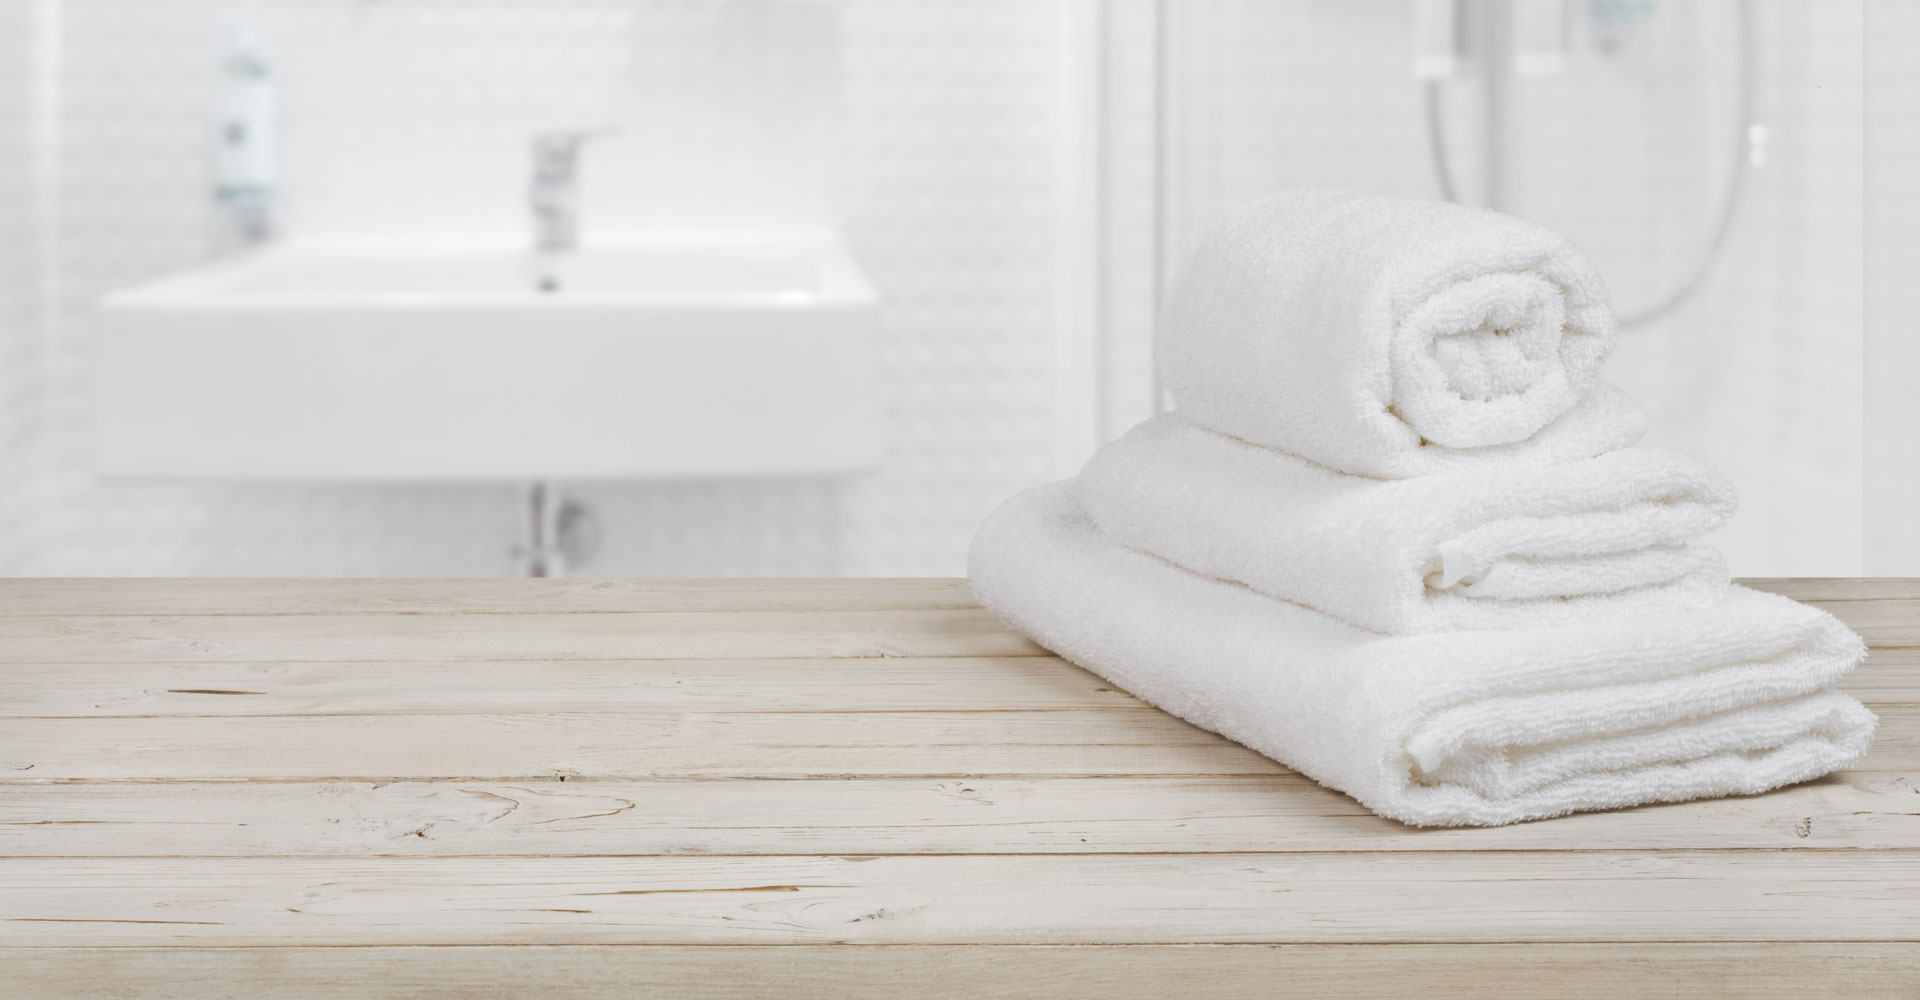 Industrial Laundry Detergents and Cleaning Chemicals